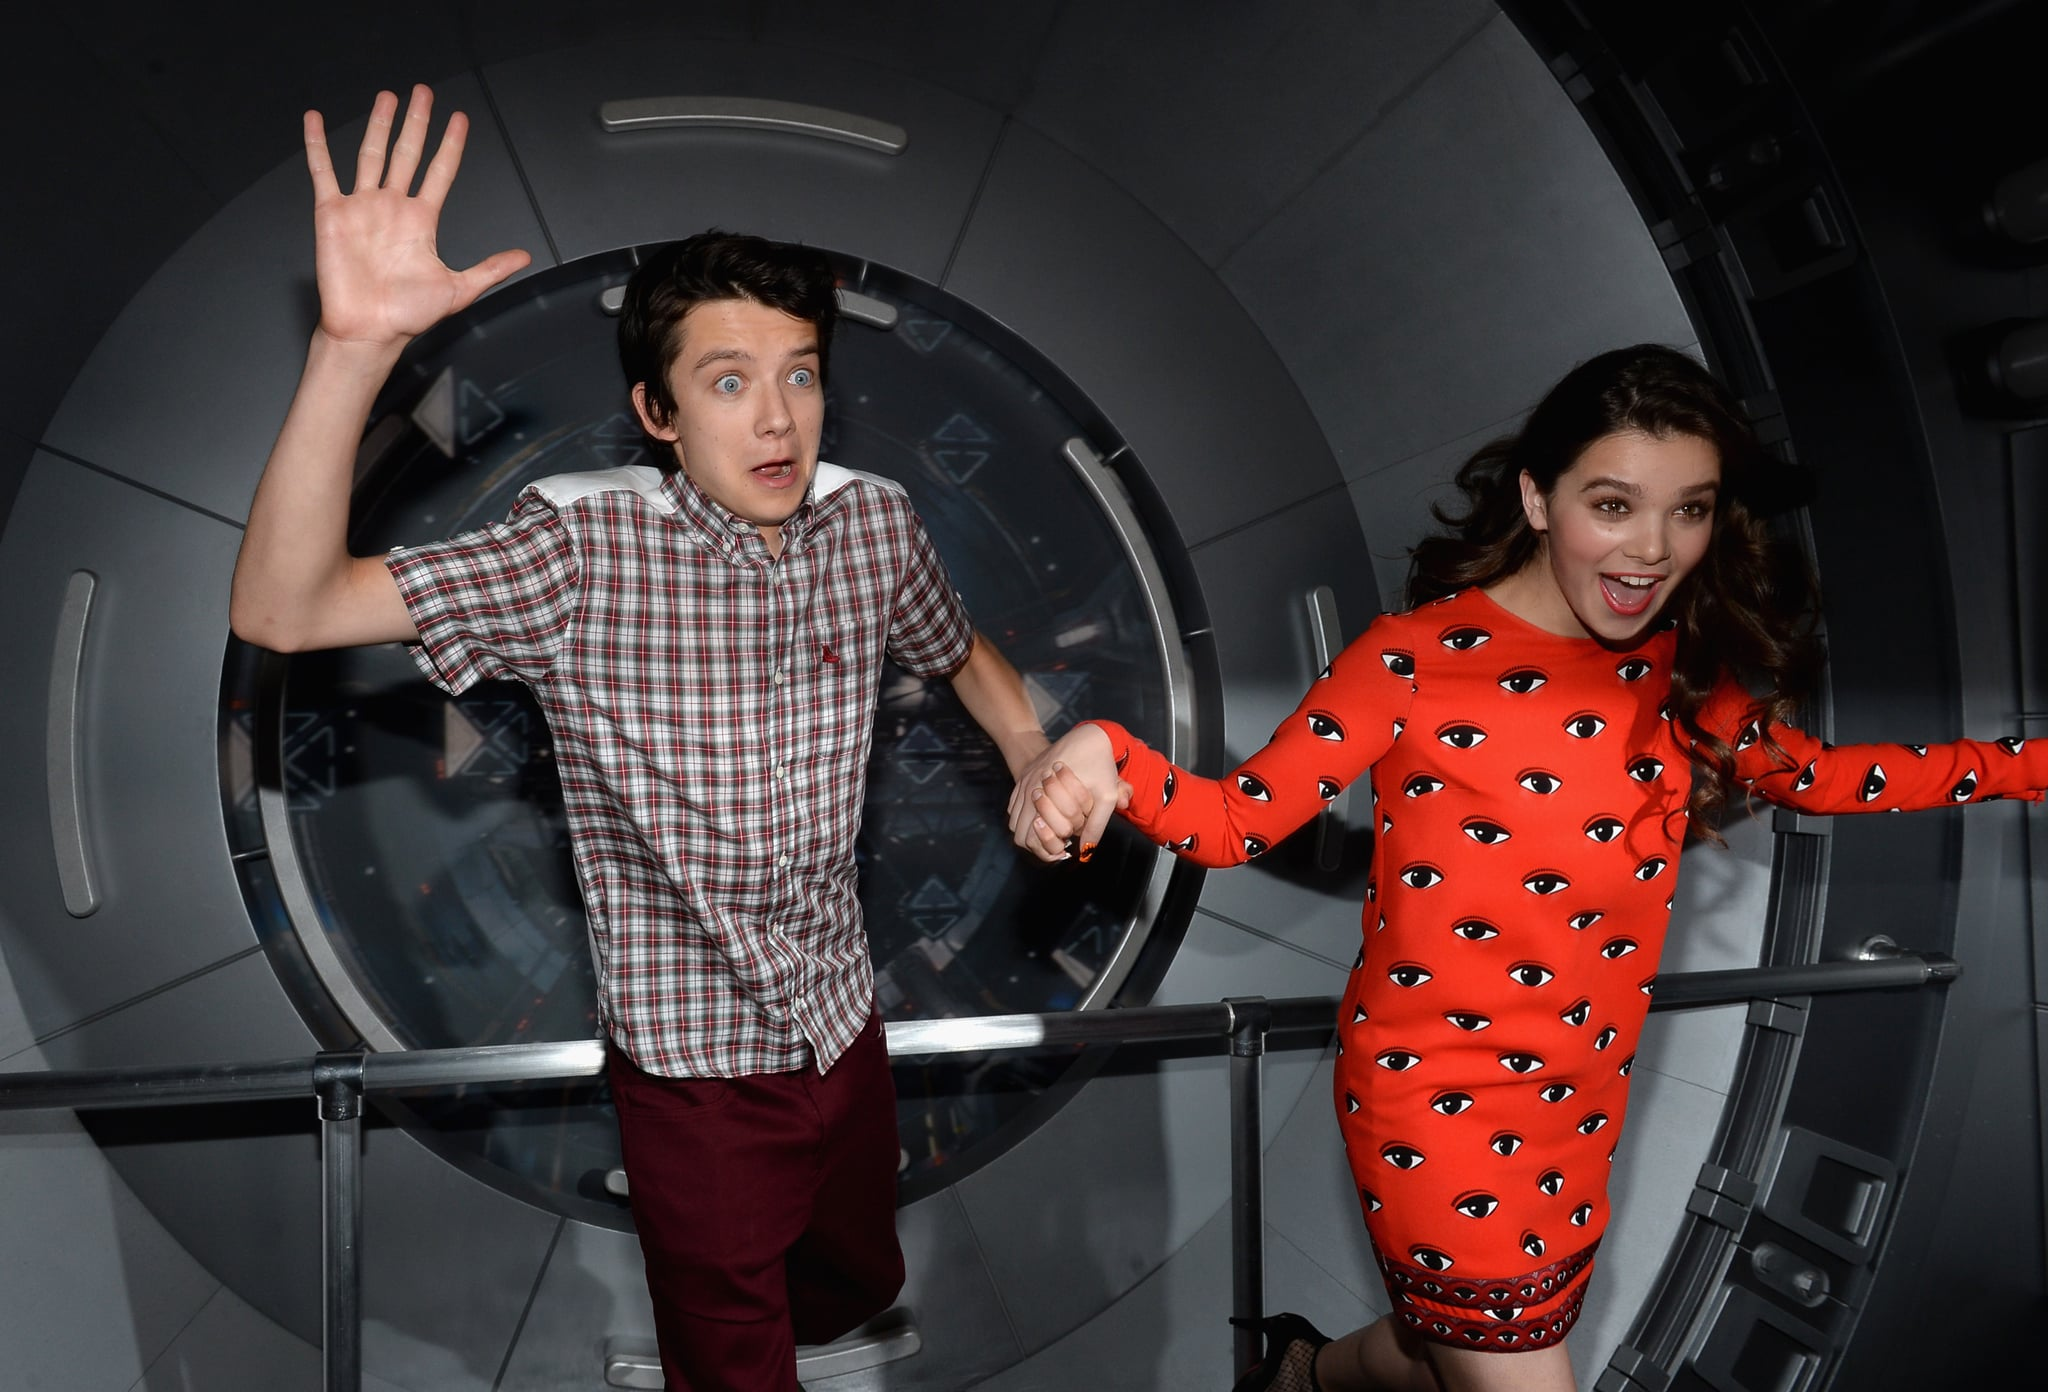 Ender's Game stars Asa Butterfield and Hailee Steinfeld were blown away during a press event for the movie in 2013.